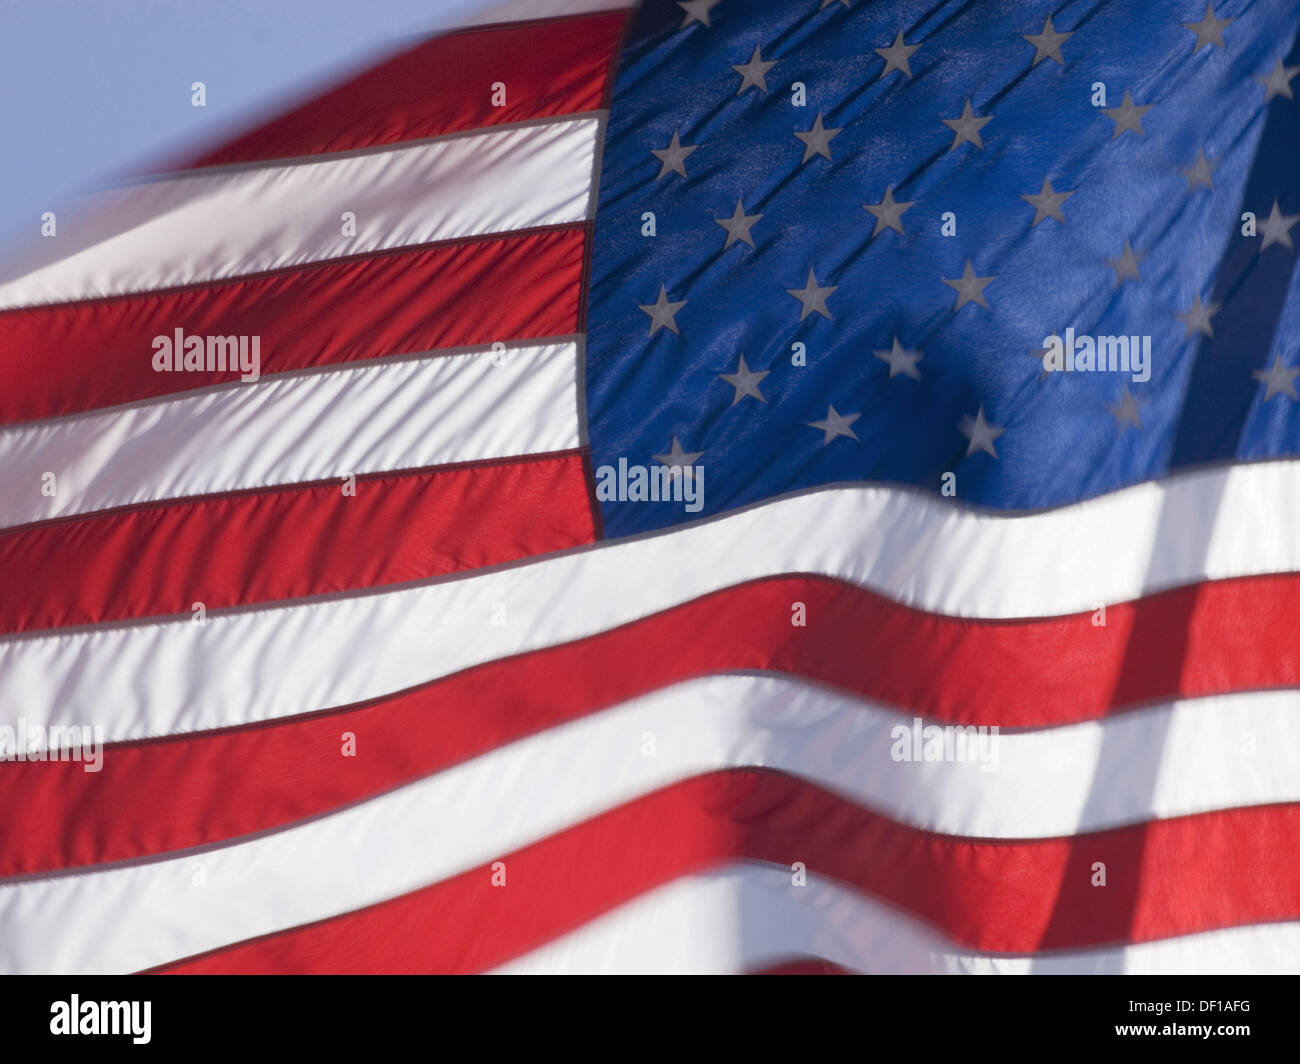 American Flag Blows In Wind Stockfotos & American Flag Blows In Wind ...